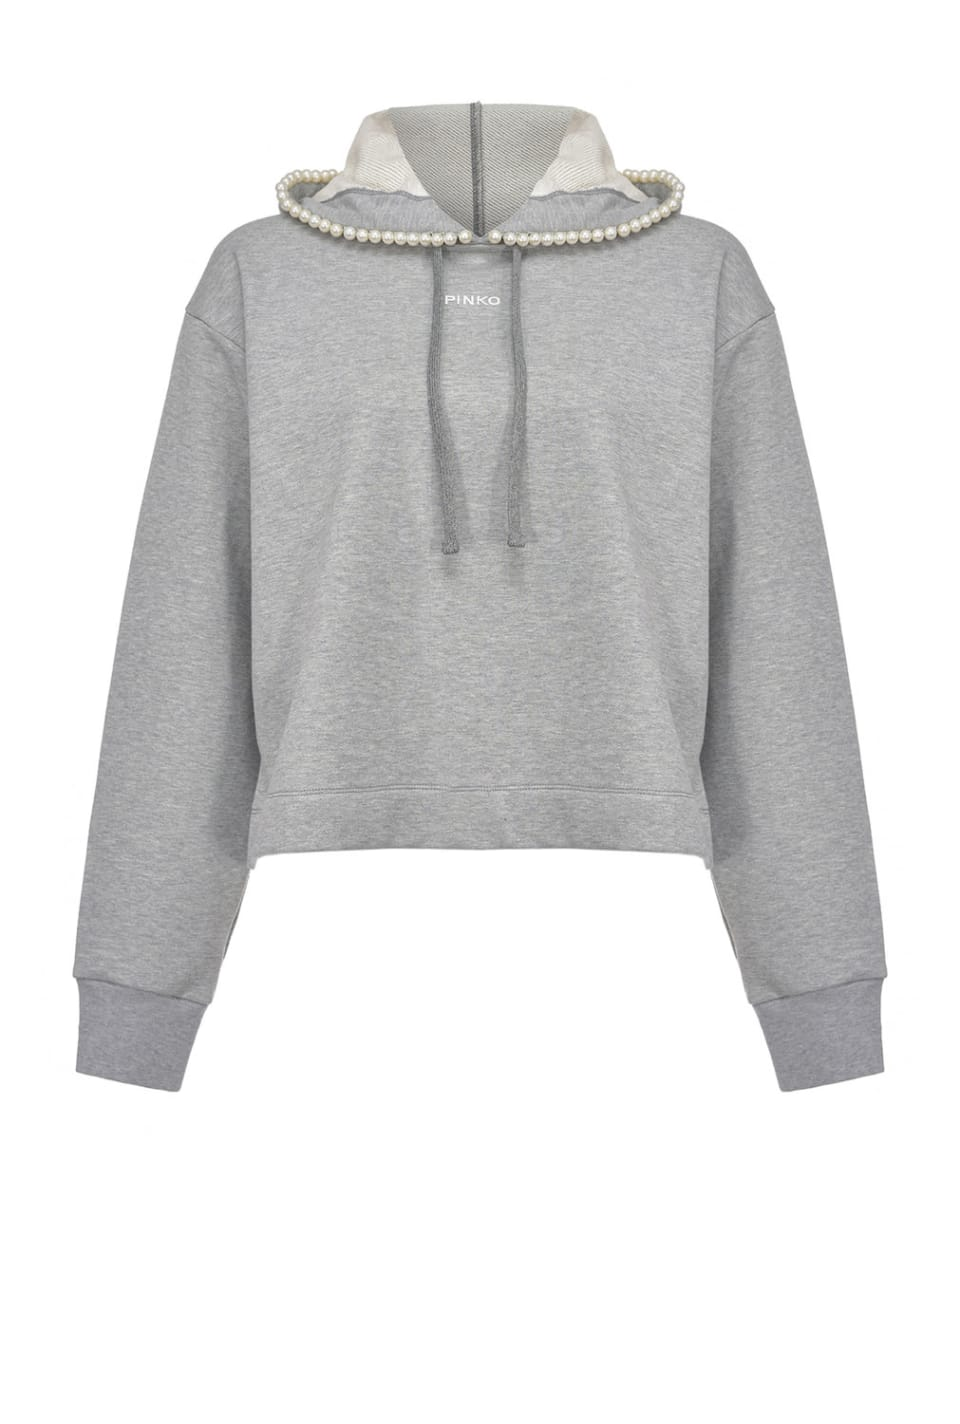 Sweatshirt with pearls - Pinko